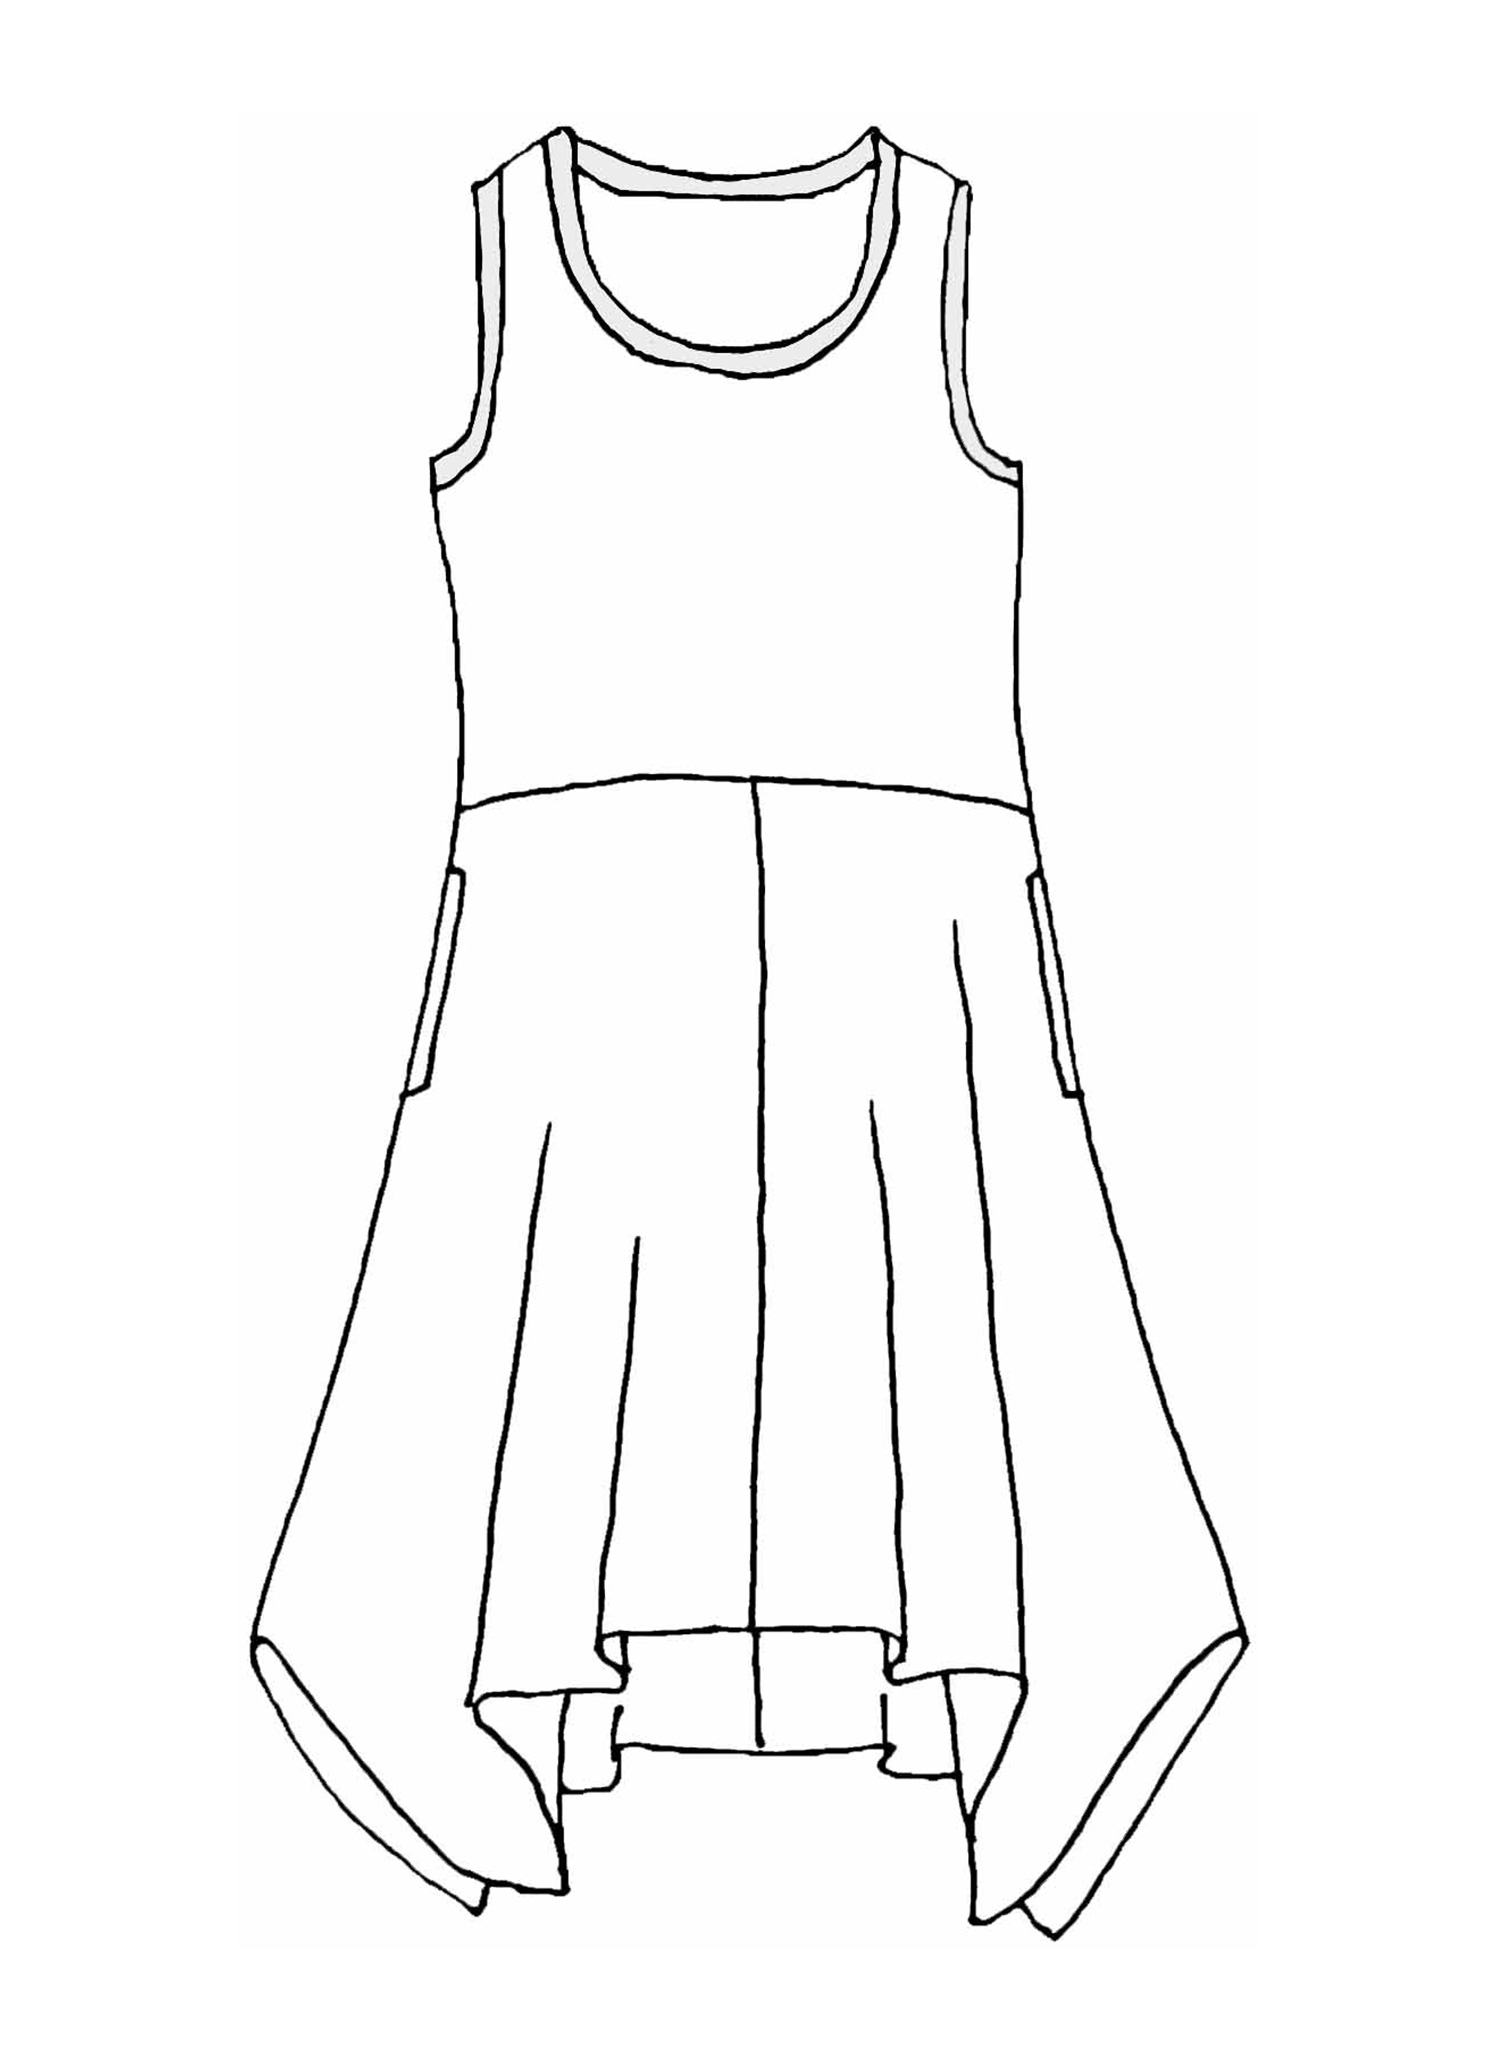 Edgy Dress sketch image